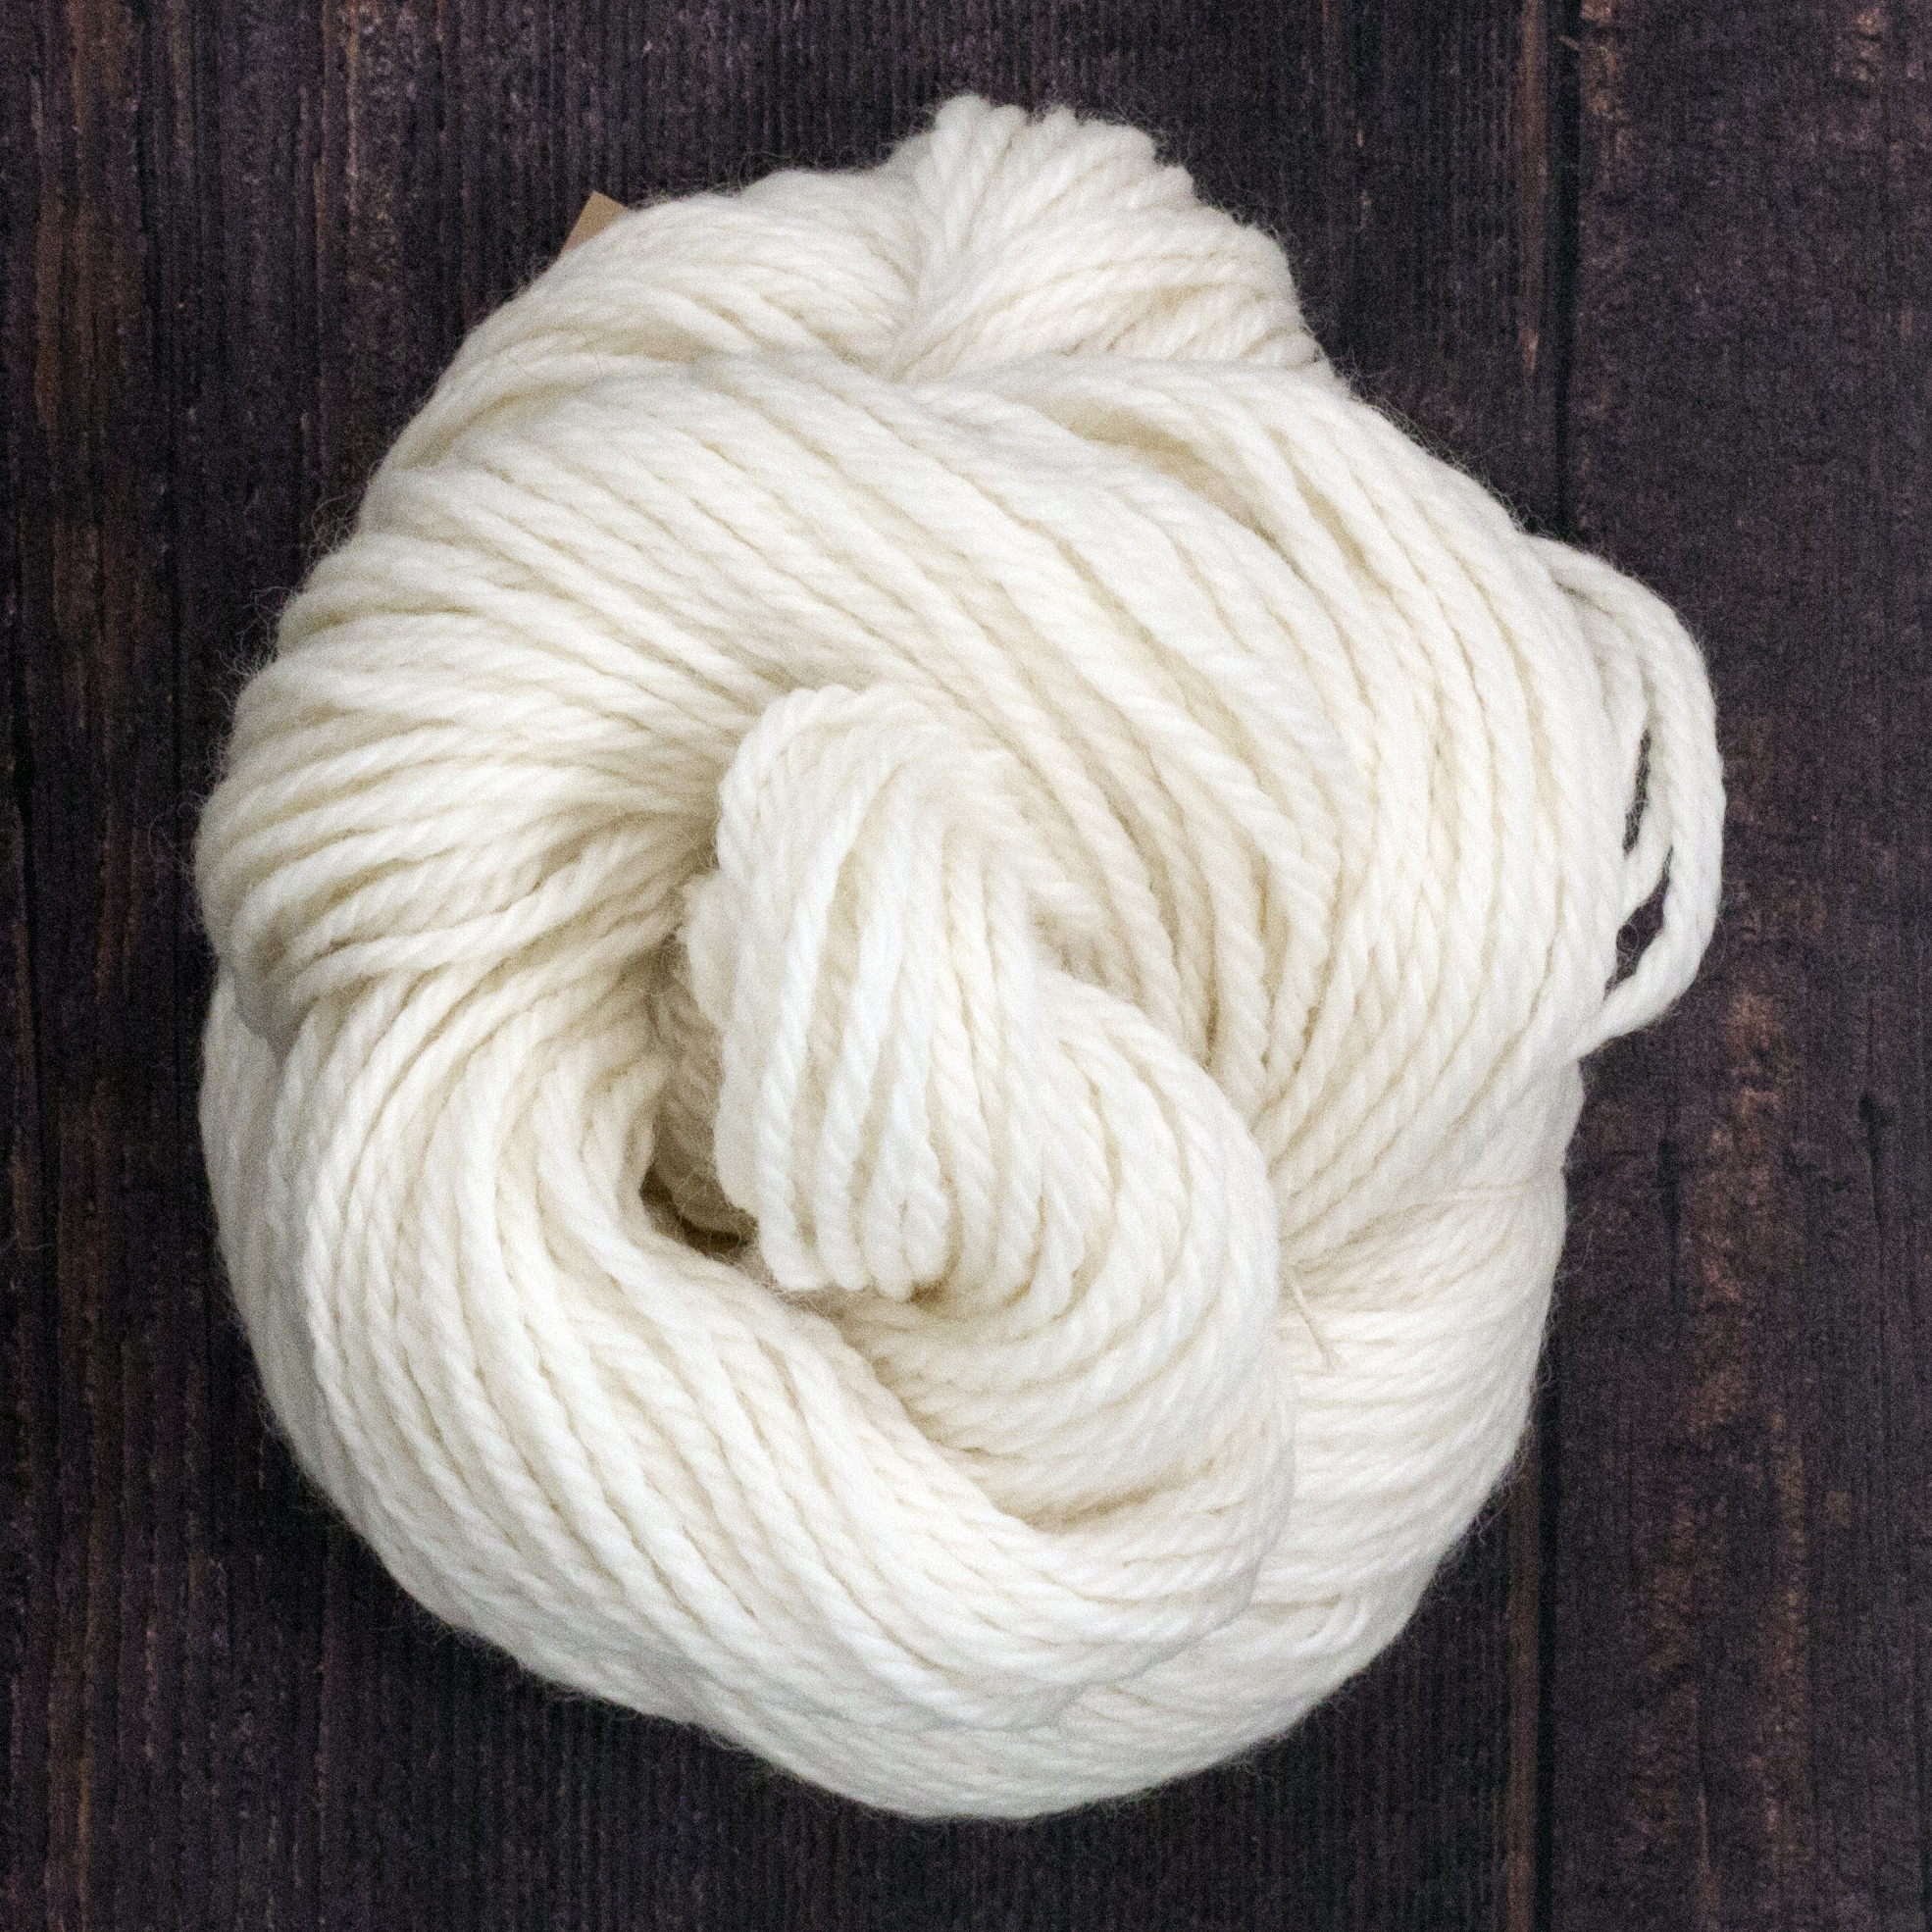 Type 49308   Organic Aran   100% Organic South American Merino Wool    100g Hanks  166m per 100g  3/5nm